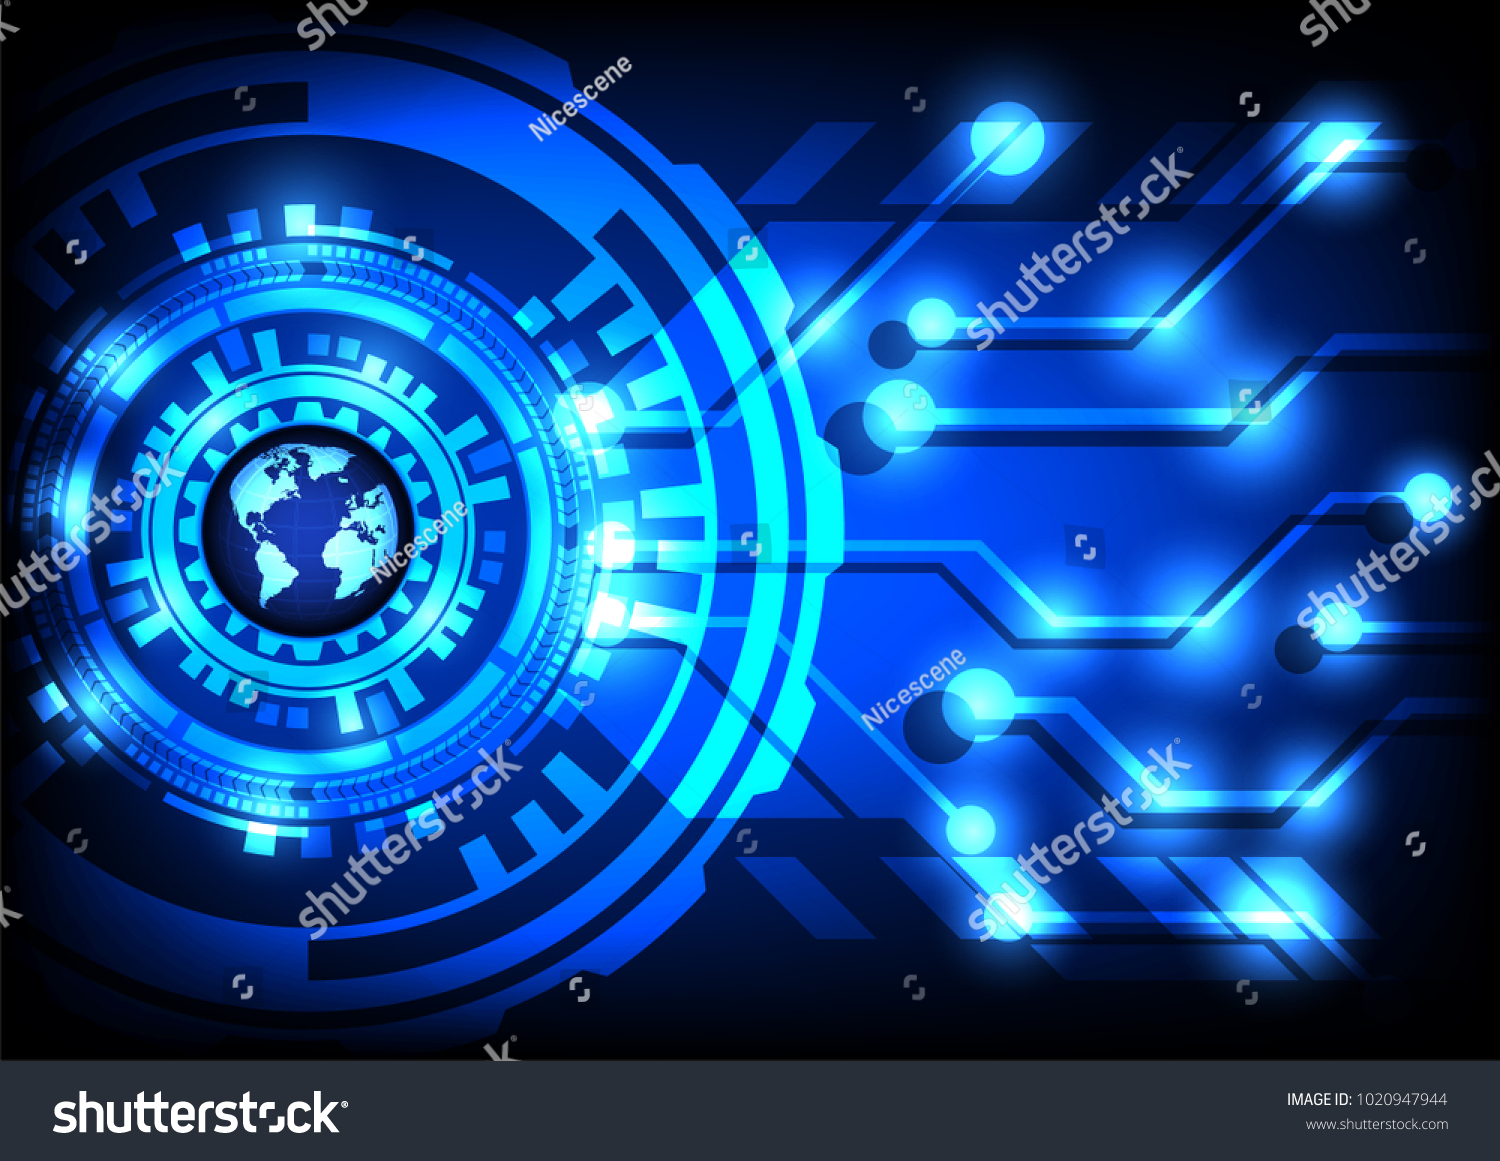 Abstract Technology Blue World Globe Digital Stock Vector Royalty Circuit Design Online With Line Background Illustration Communication Internet